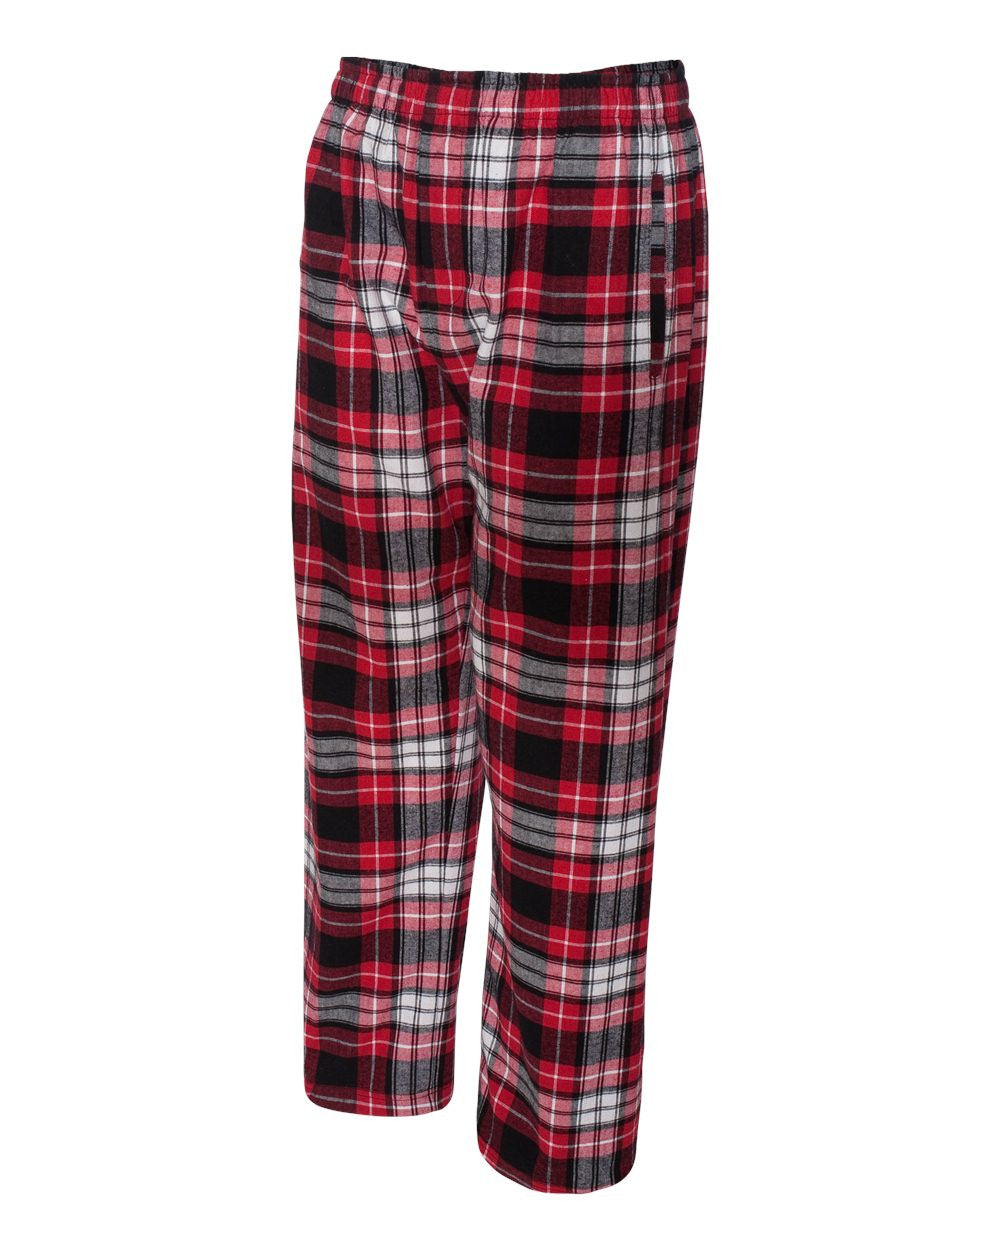 Classic Flannel Pants with Pockets - Discountedrack.com